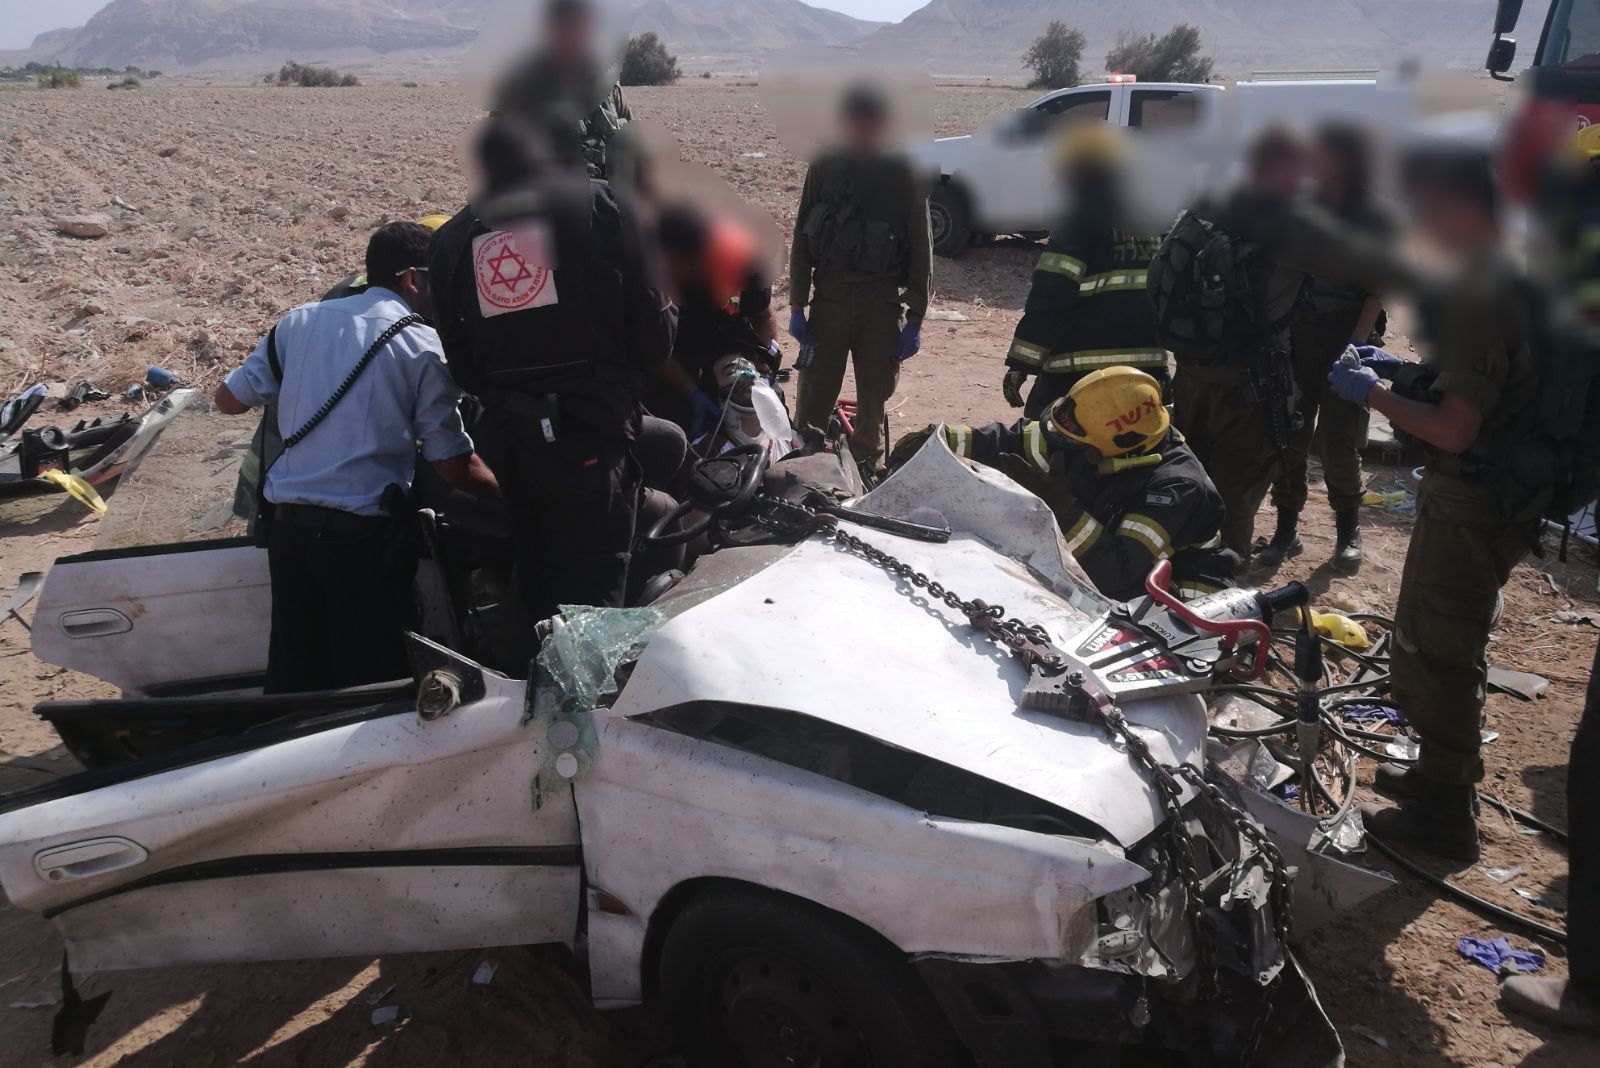 8 Injured In Horrific Collision In Jordan Valley